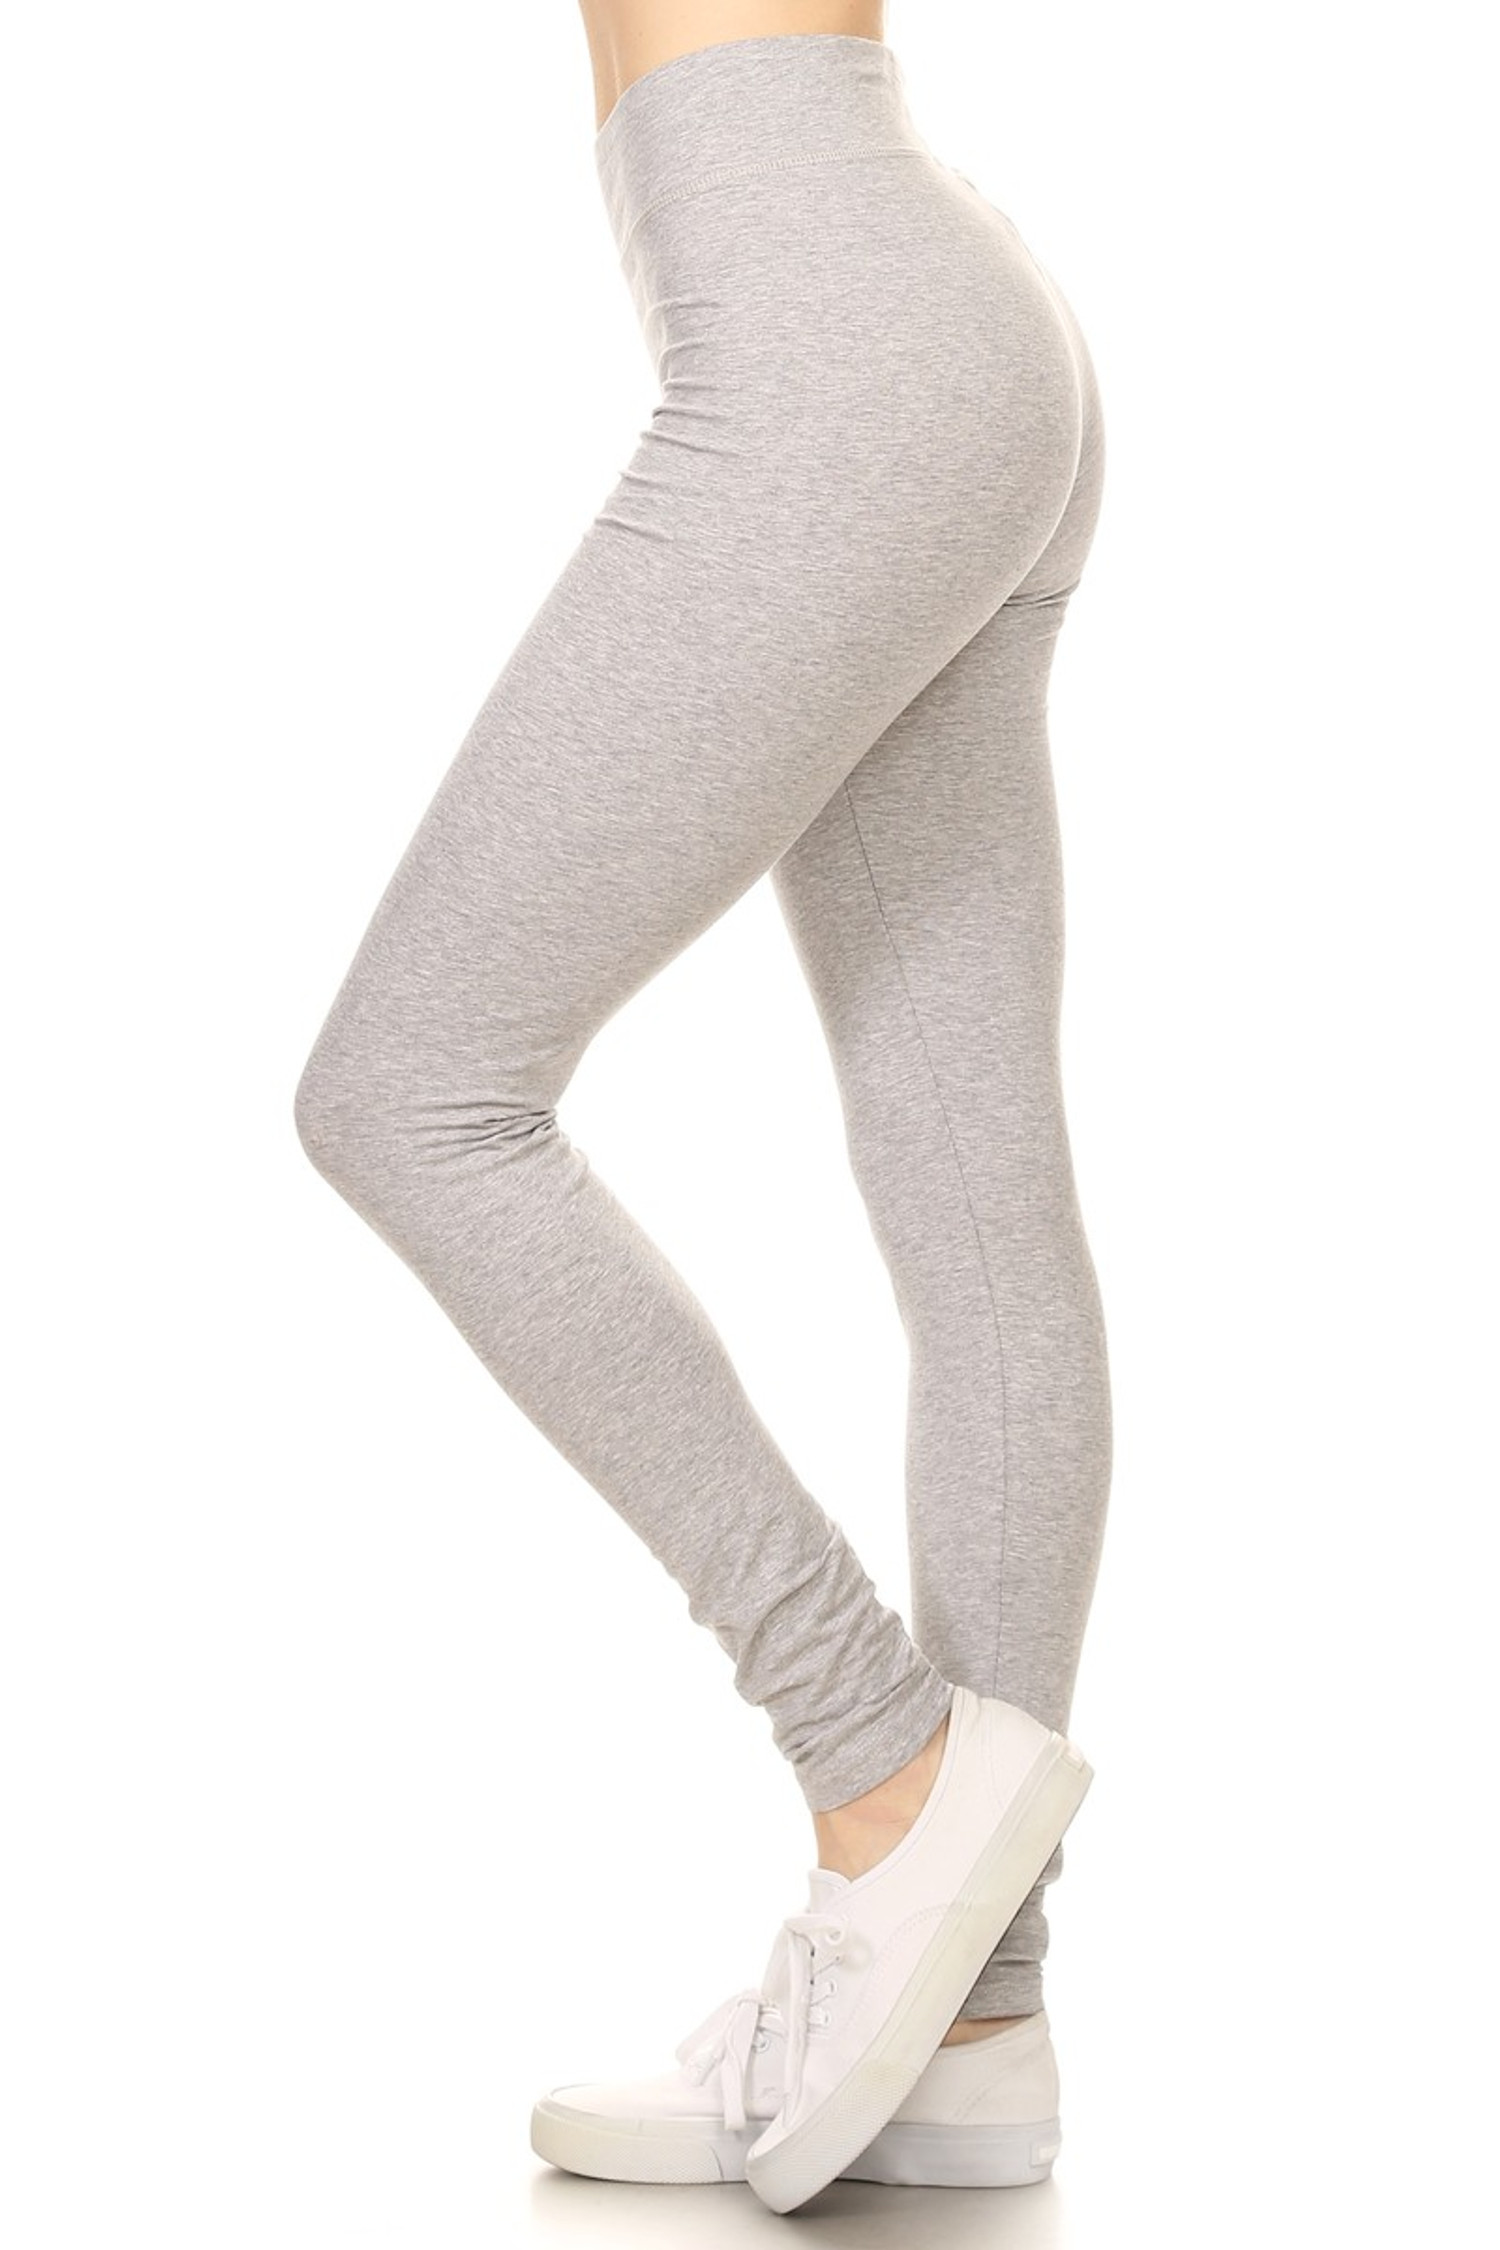 Side image of Heather Gray High Waisted Cotton Sport Leggings